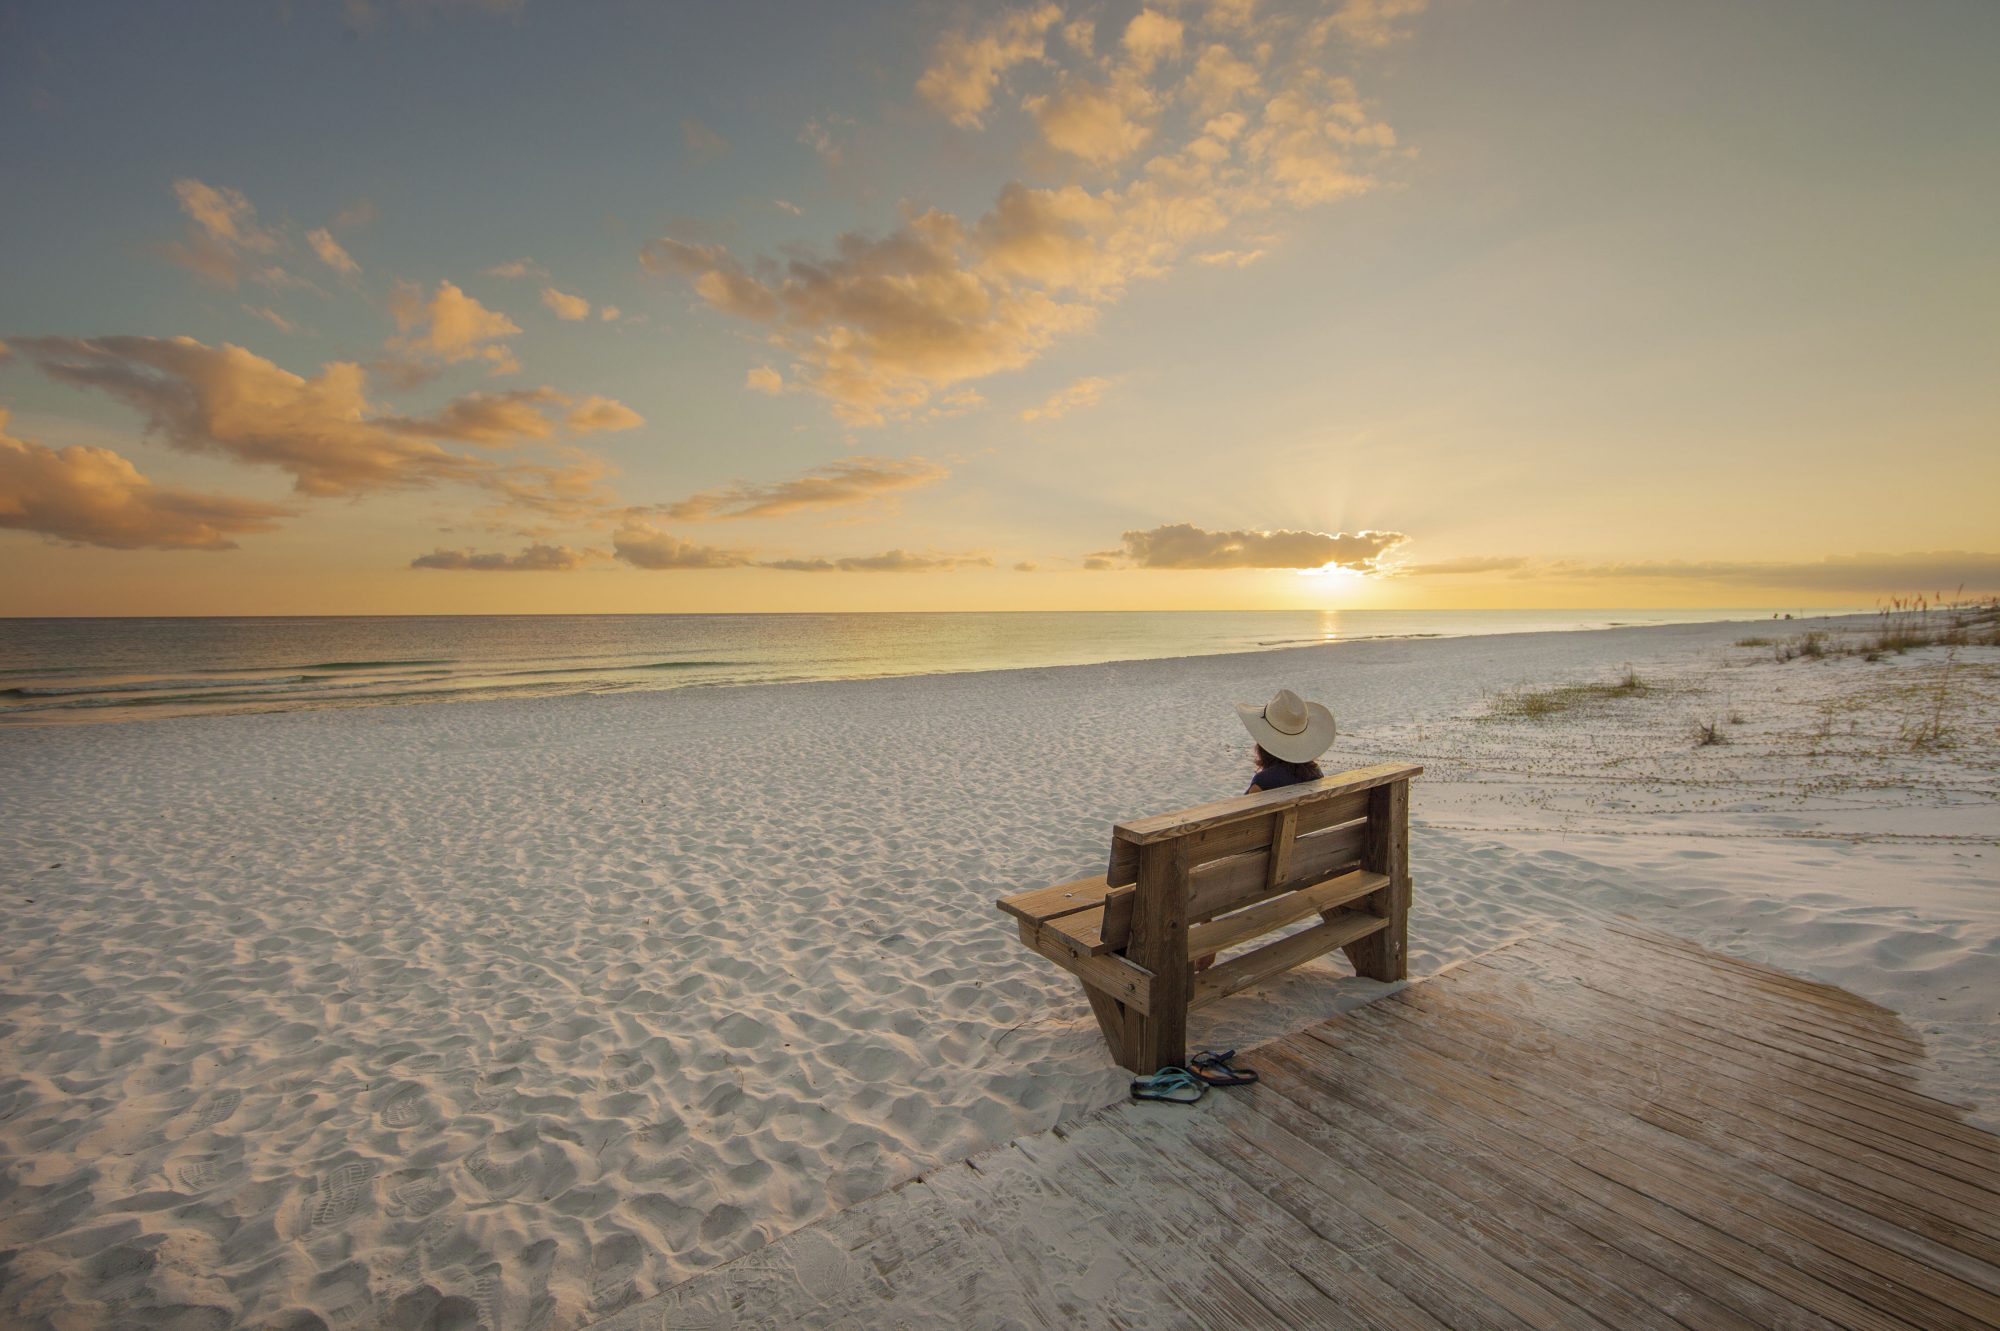 Founded more than 100 years ago, quirky Grayton Beach in South Walton, Florida, is mostly surrounded by the lush trees and winding trails of Grayton Beach State Park. Narrow, tree-lined streets in town are perfect for wandering (and checking out...